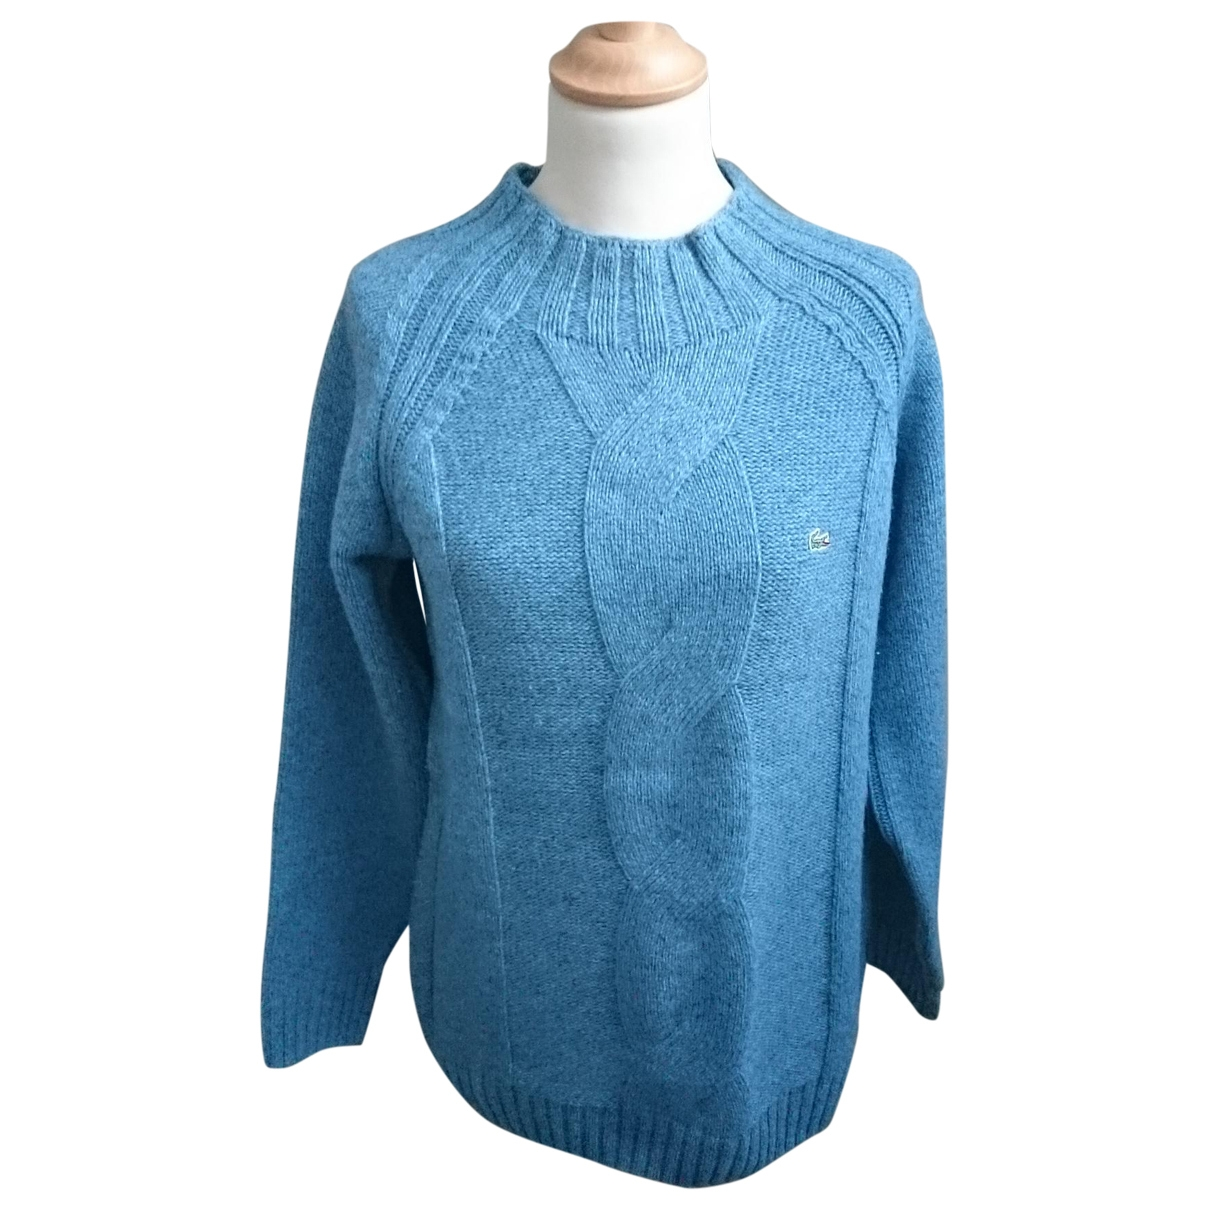 Lacoste \N Pullover in  Blau Wolle